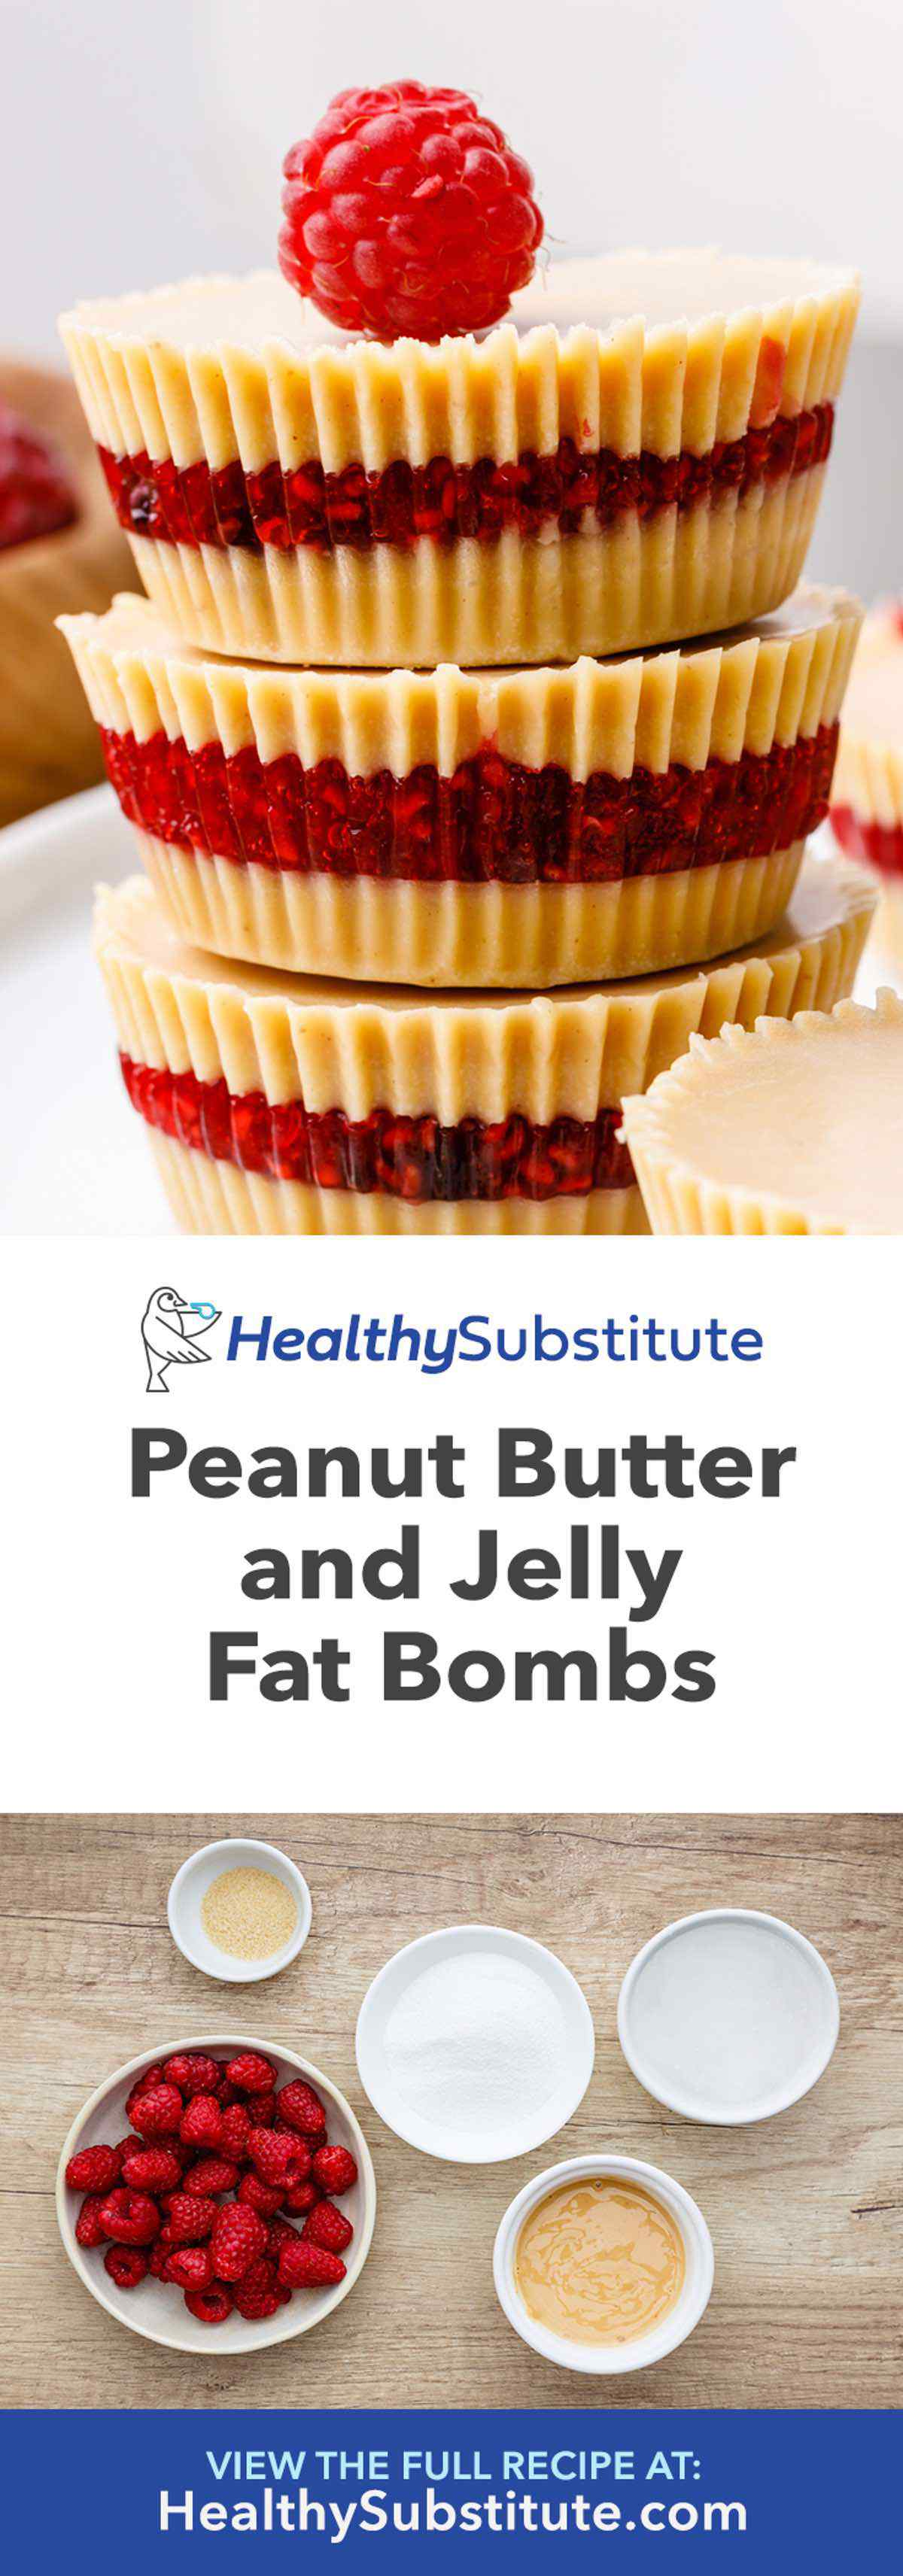 Peanut Butter and Jelly Fat Bombs